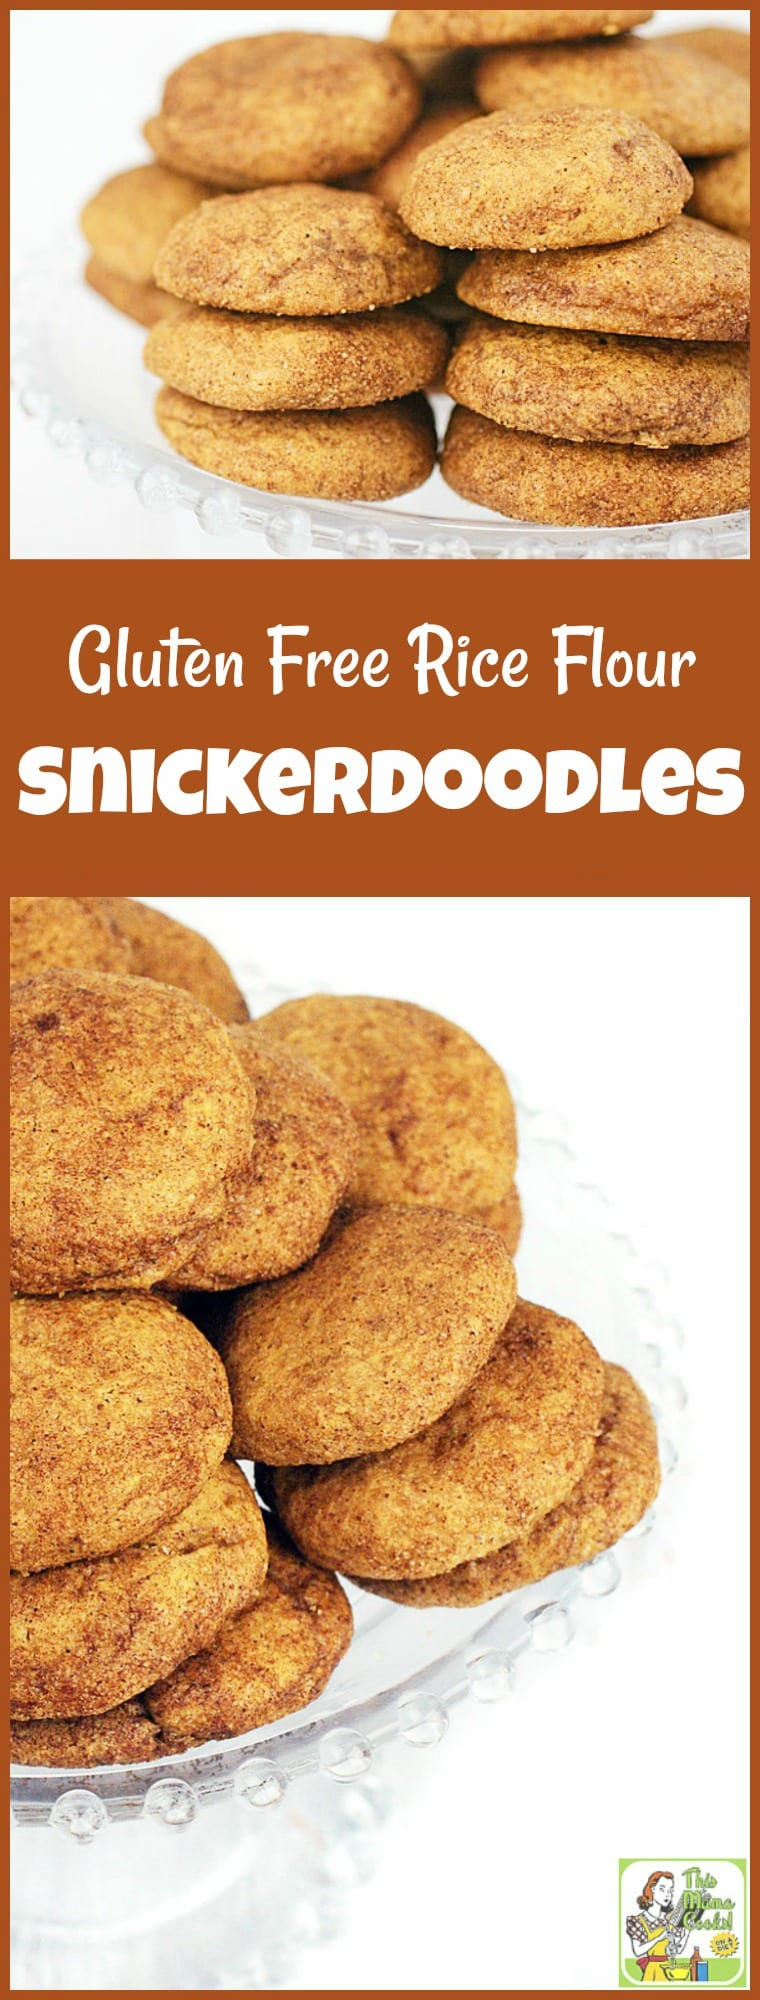 Looking for a gluten-free cookie recipe? Try this easy to make Gluten Free Rice Flour Snickerdoodles cookie recipe. Snickerdoodle cookies are ideal for a cookie exchange, a holiday cookie swap or homemade gifts. #recipe #easy #recipeoftheday #healthyrecipes #glutenfree #easyrecipes #baking #cookies #cookieexchange #cookieswap #desserts #dessertrecipes #dairyfree